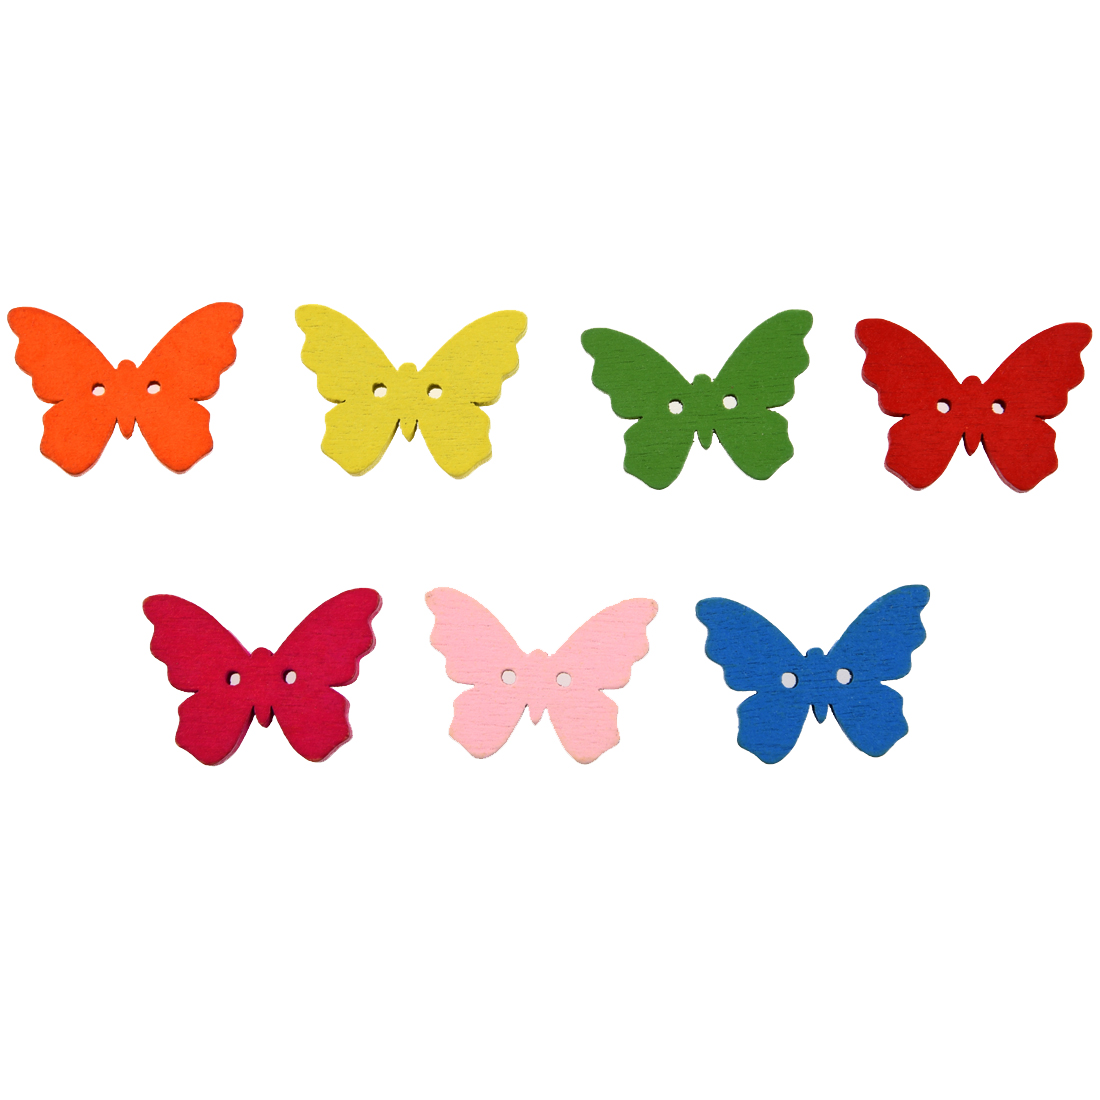 Pack of 50 Colorful 2 Holes Wooden Butterfly Buttons, for DIY, Sewing, Scrapbooking, Crafts, Jewellery making, shabby chic